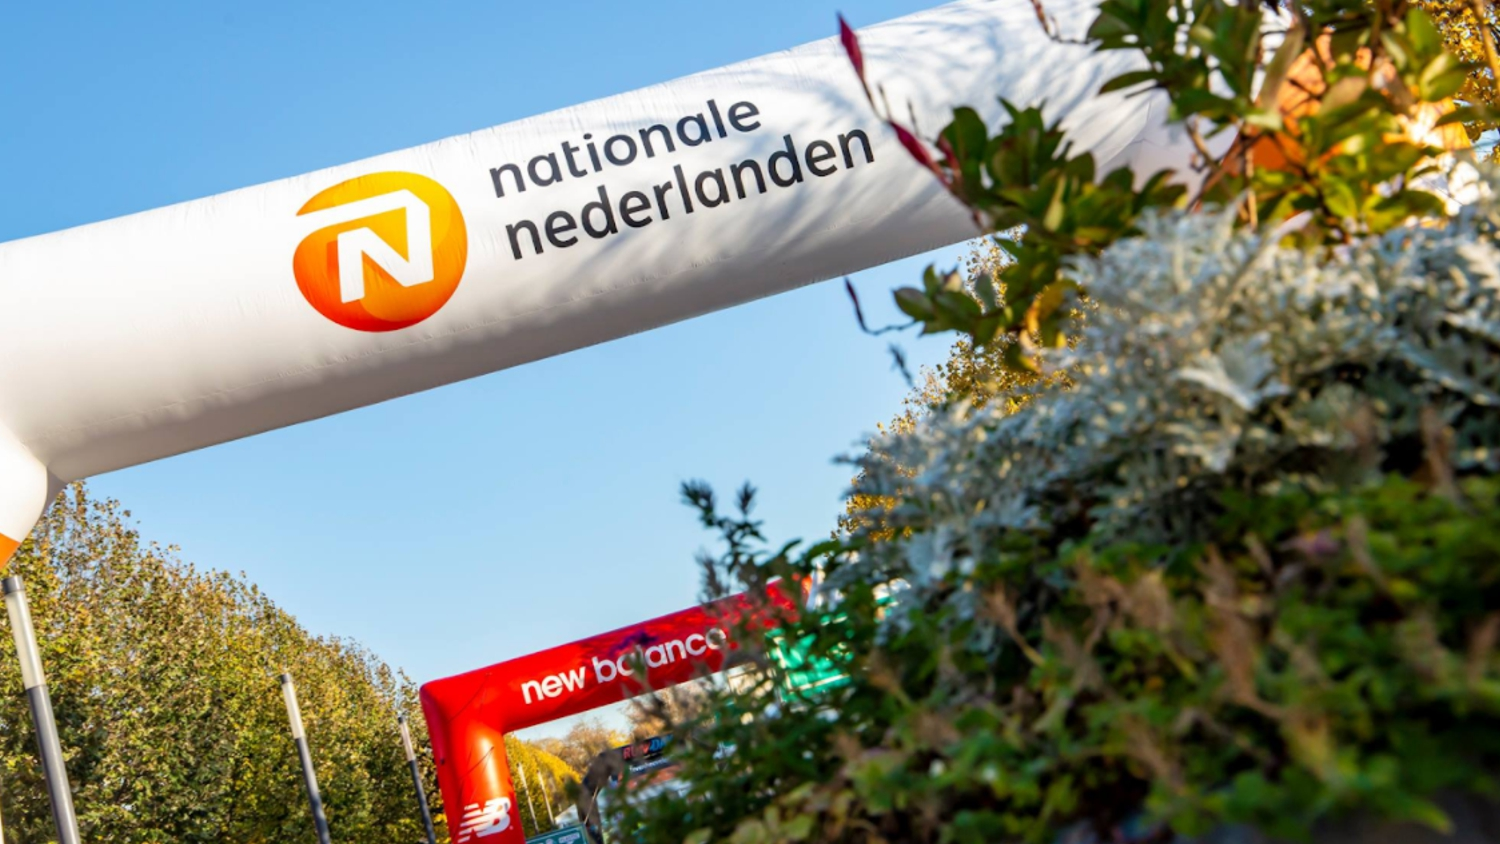 NN en New Balance opblaasbare finishboog sportmarketing - Publiair